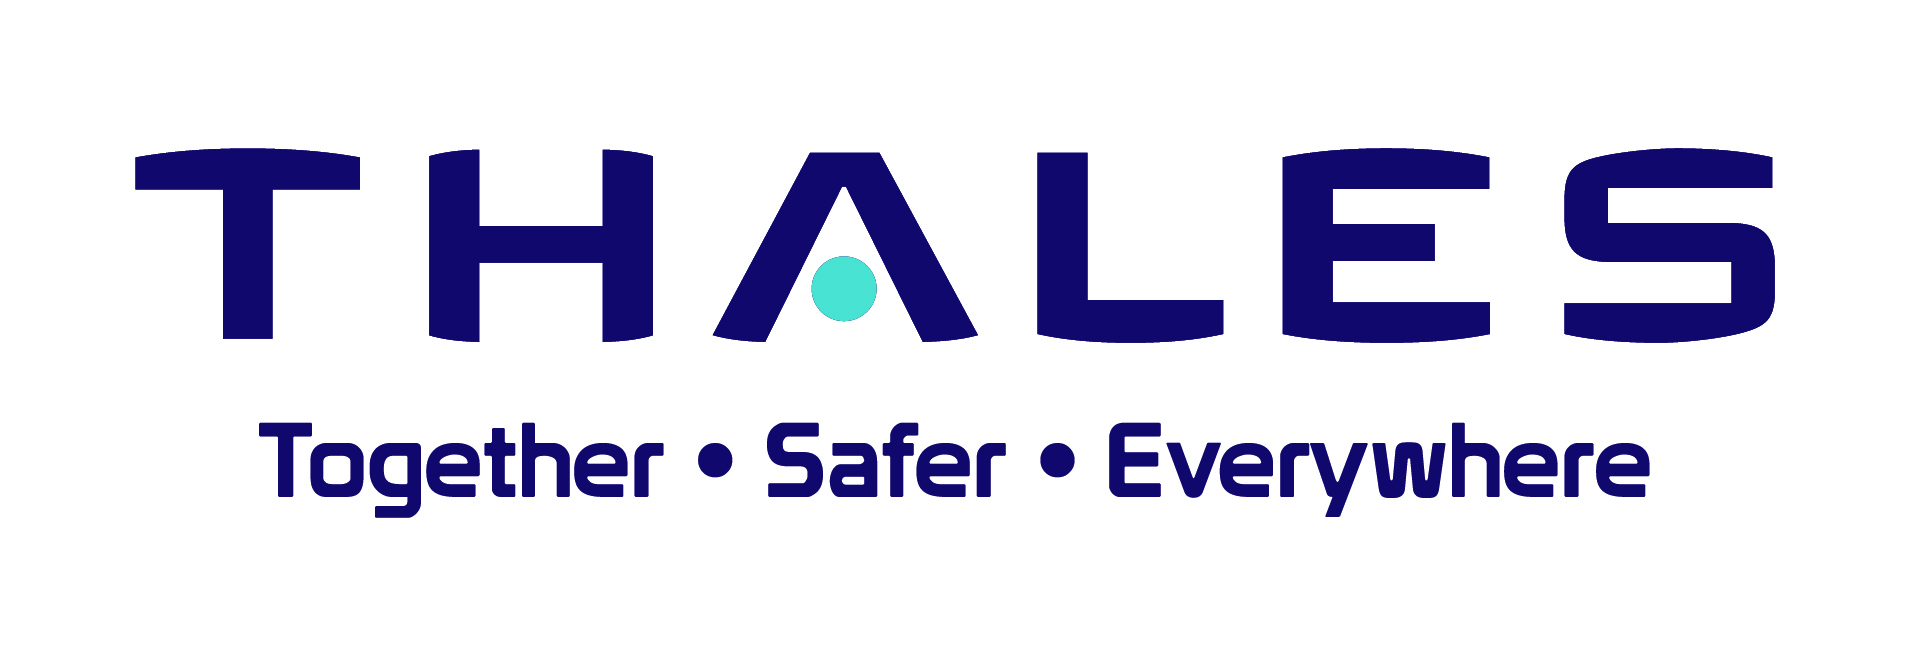 Thales logo - Together-Safer-Everywhere - pantoneopwit